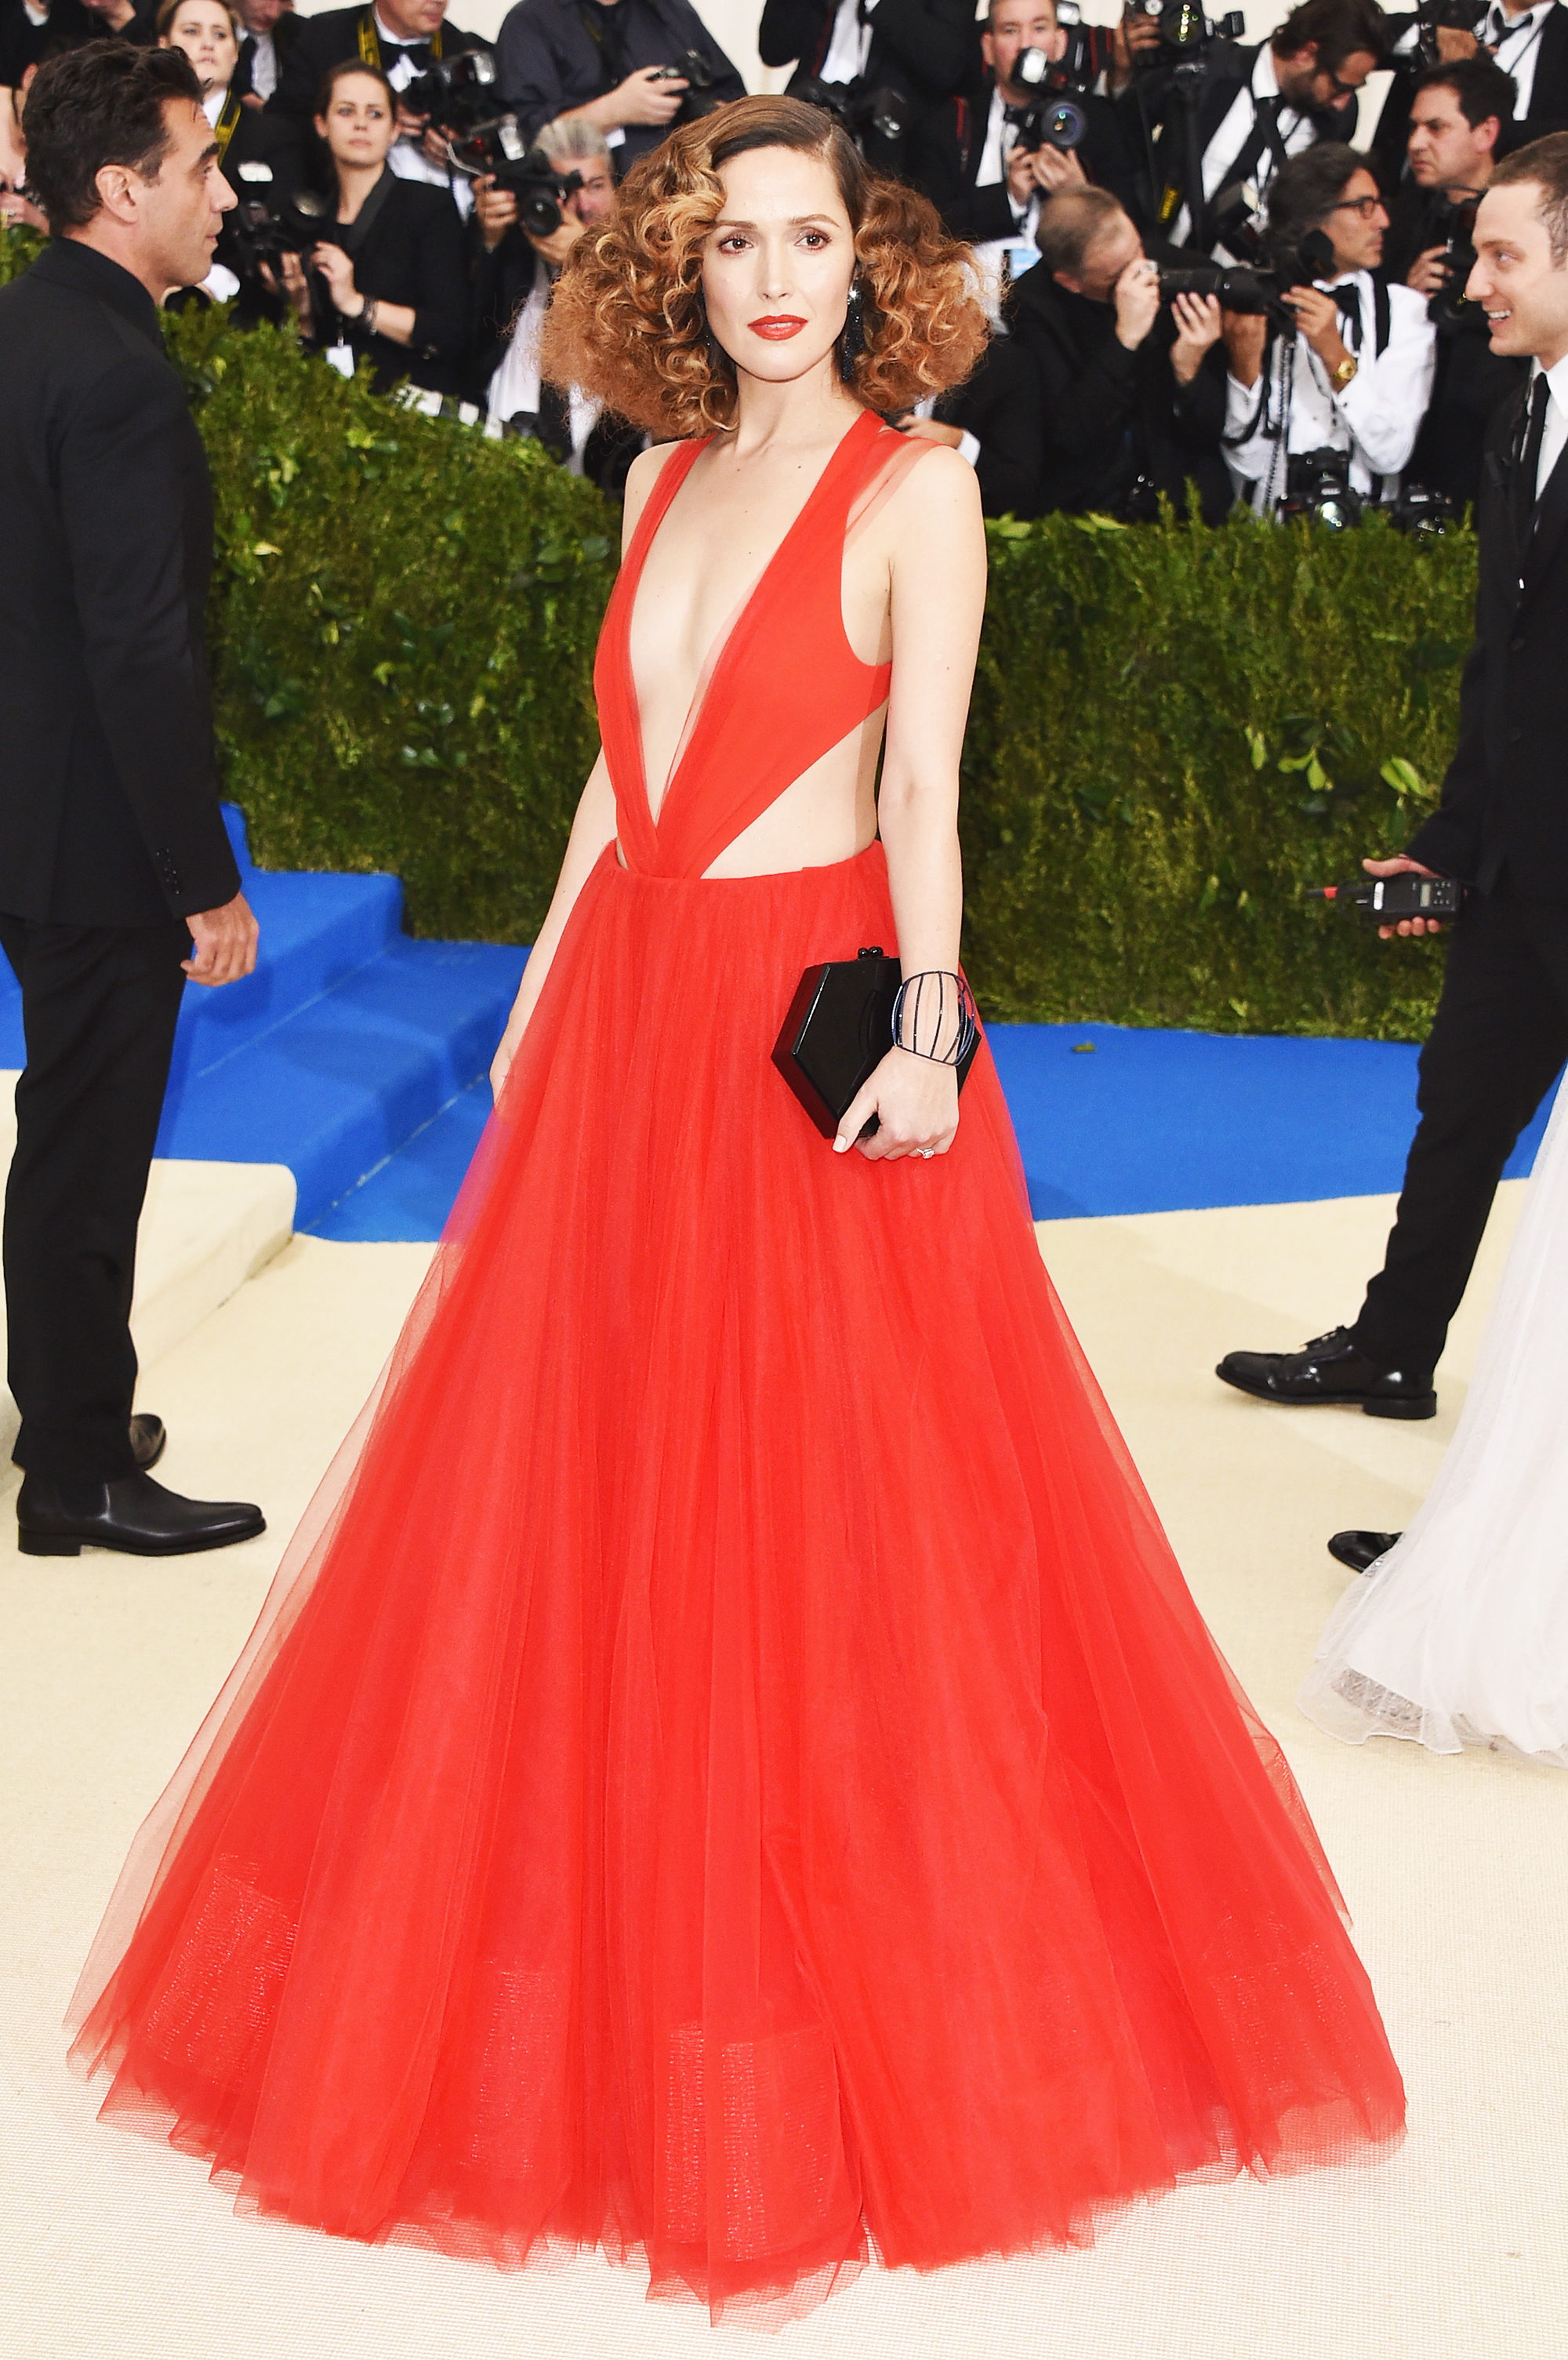 Rose Byrne attends The Metropolitan Museum of Art's Costume Institute benefit gala celebrating the opening of the Rei Kawakubo/Comme des Garçons: Art of the In-Between exhibition in New York City, on May 1, 2017.